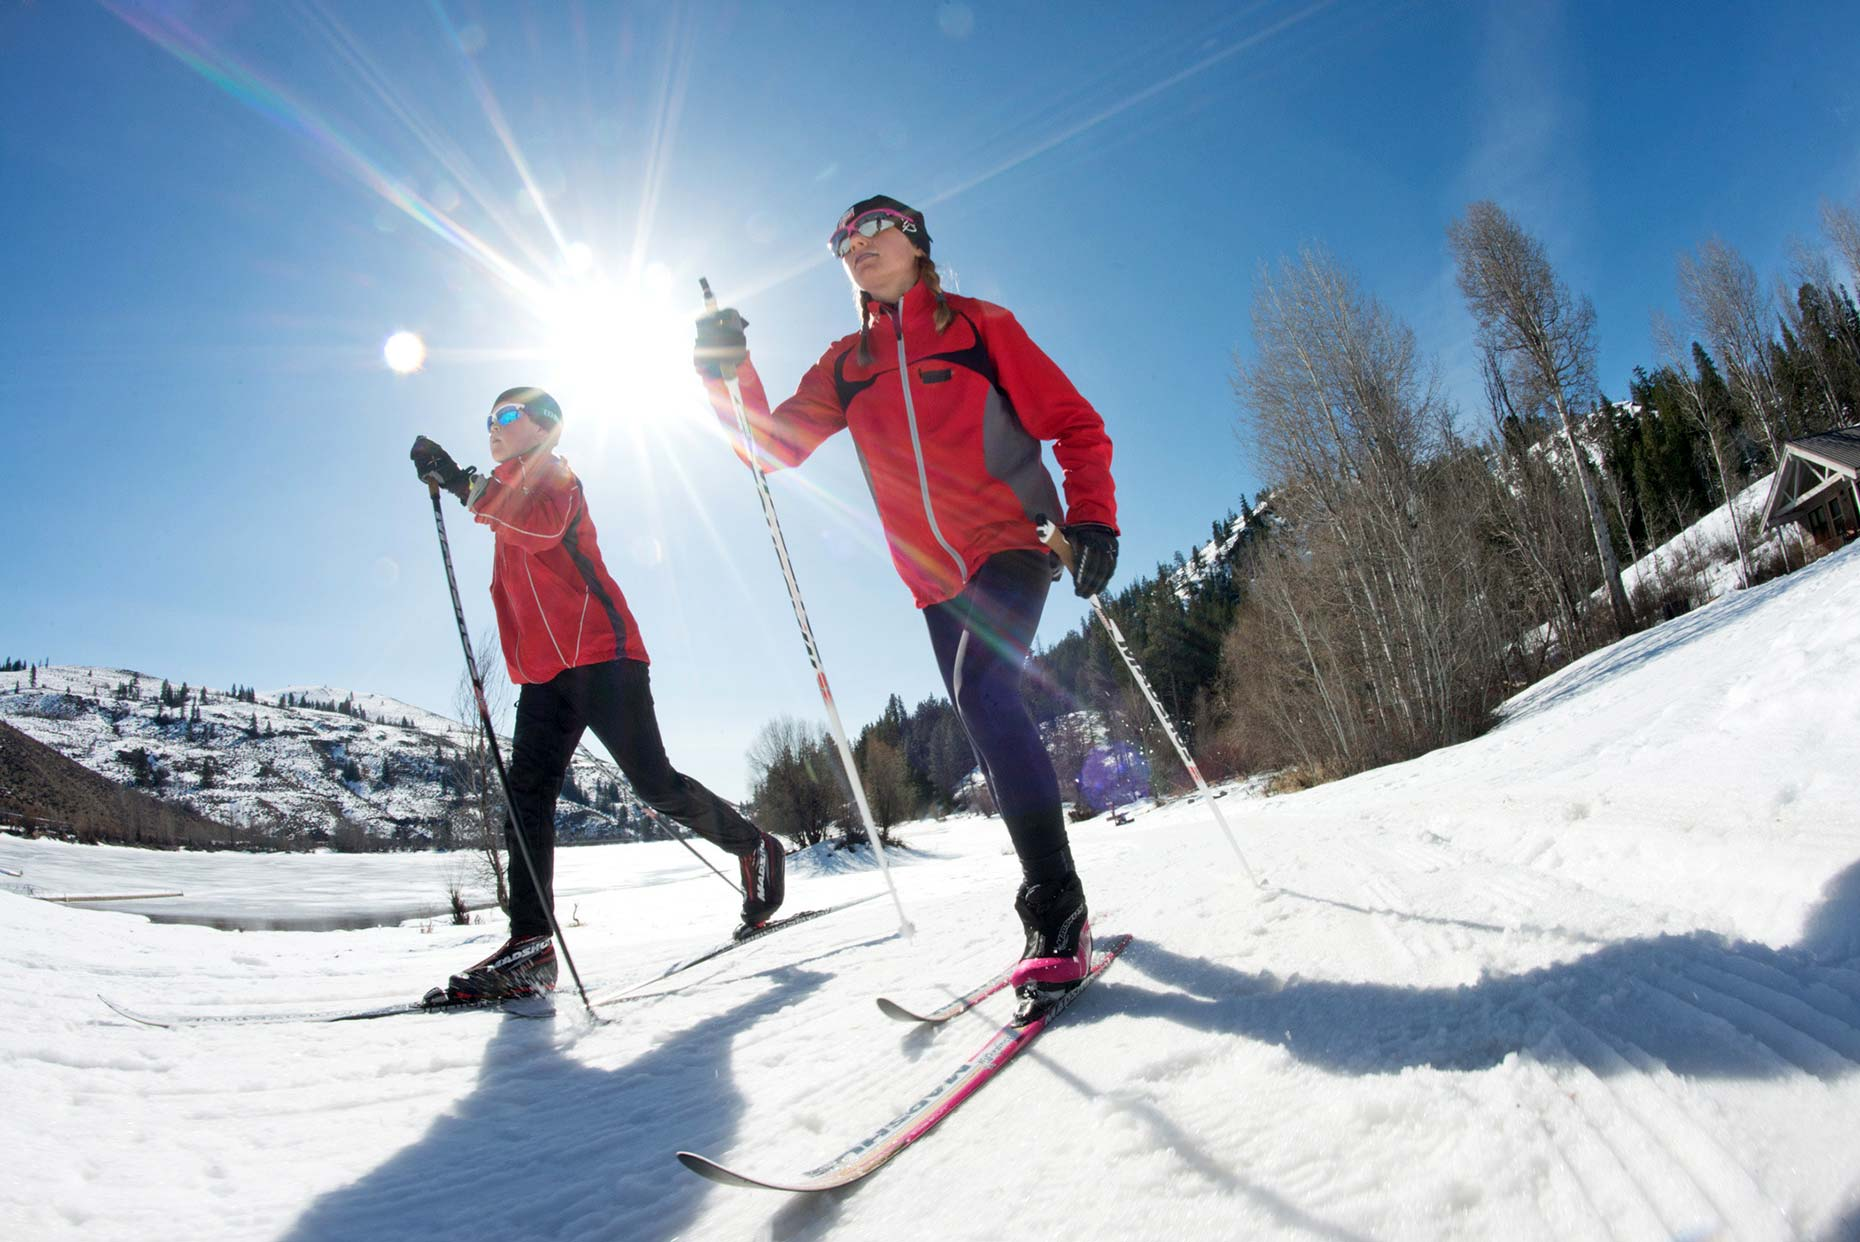 Ian-Coble-Resort-Sun-Mountain-Family-Kids-Nordic-Skiing